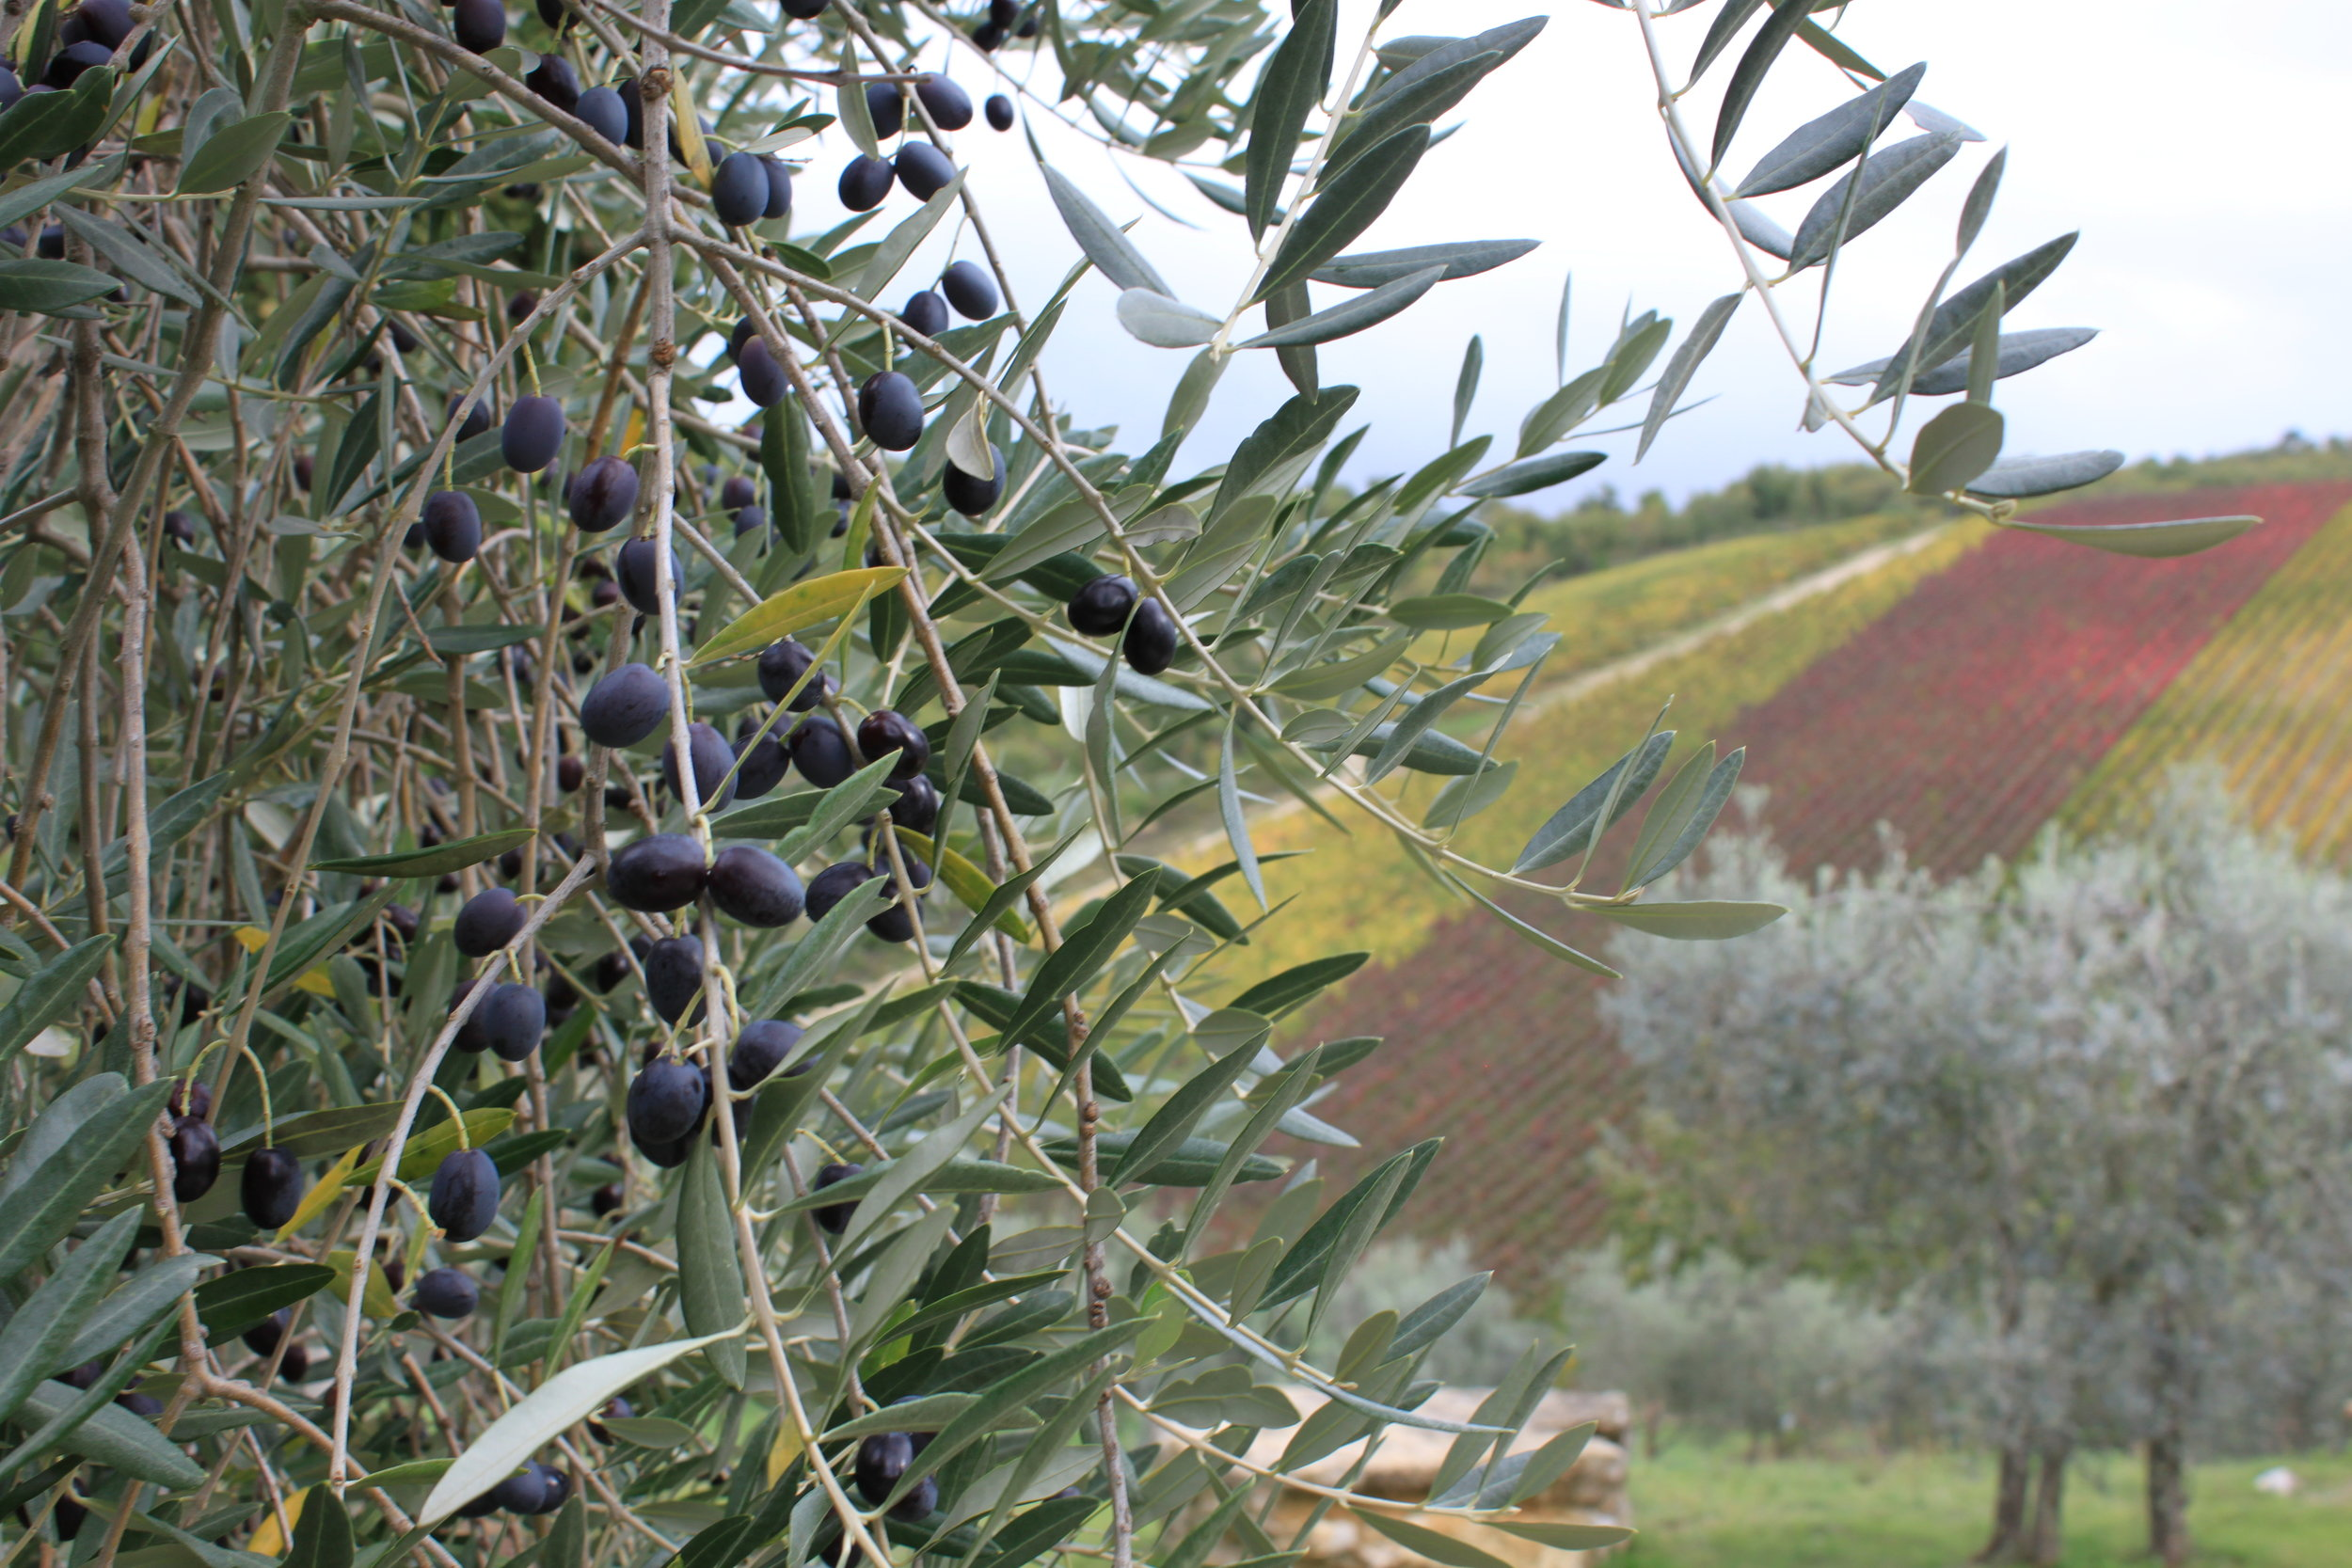 Olives ready to be picked and pressed in Tuscany